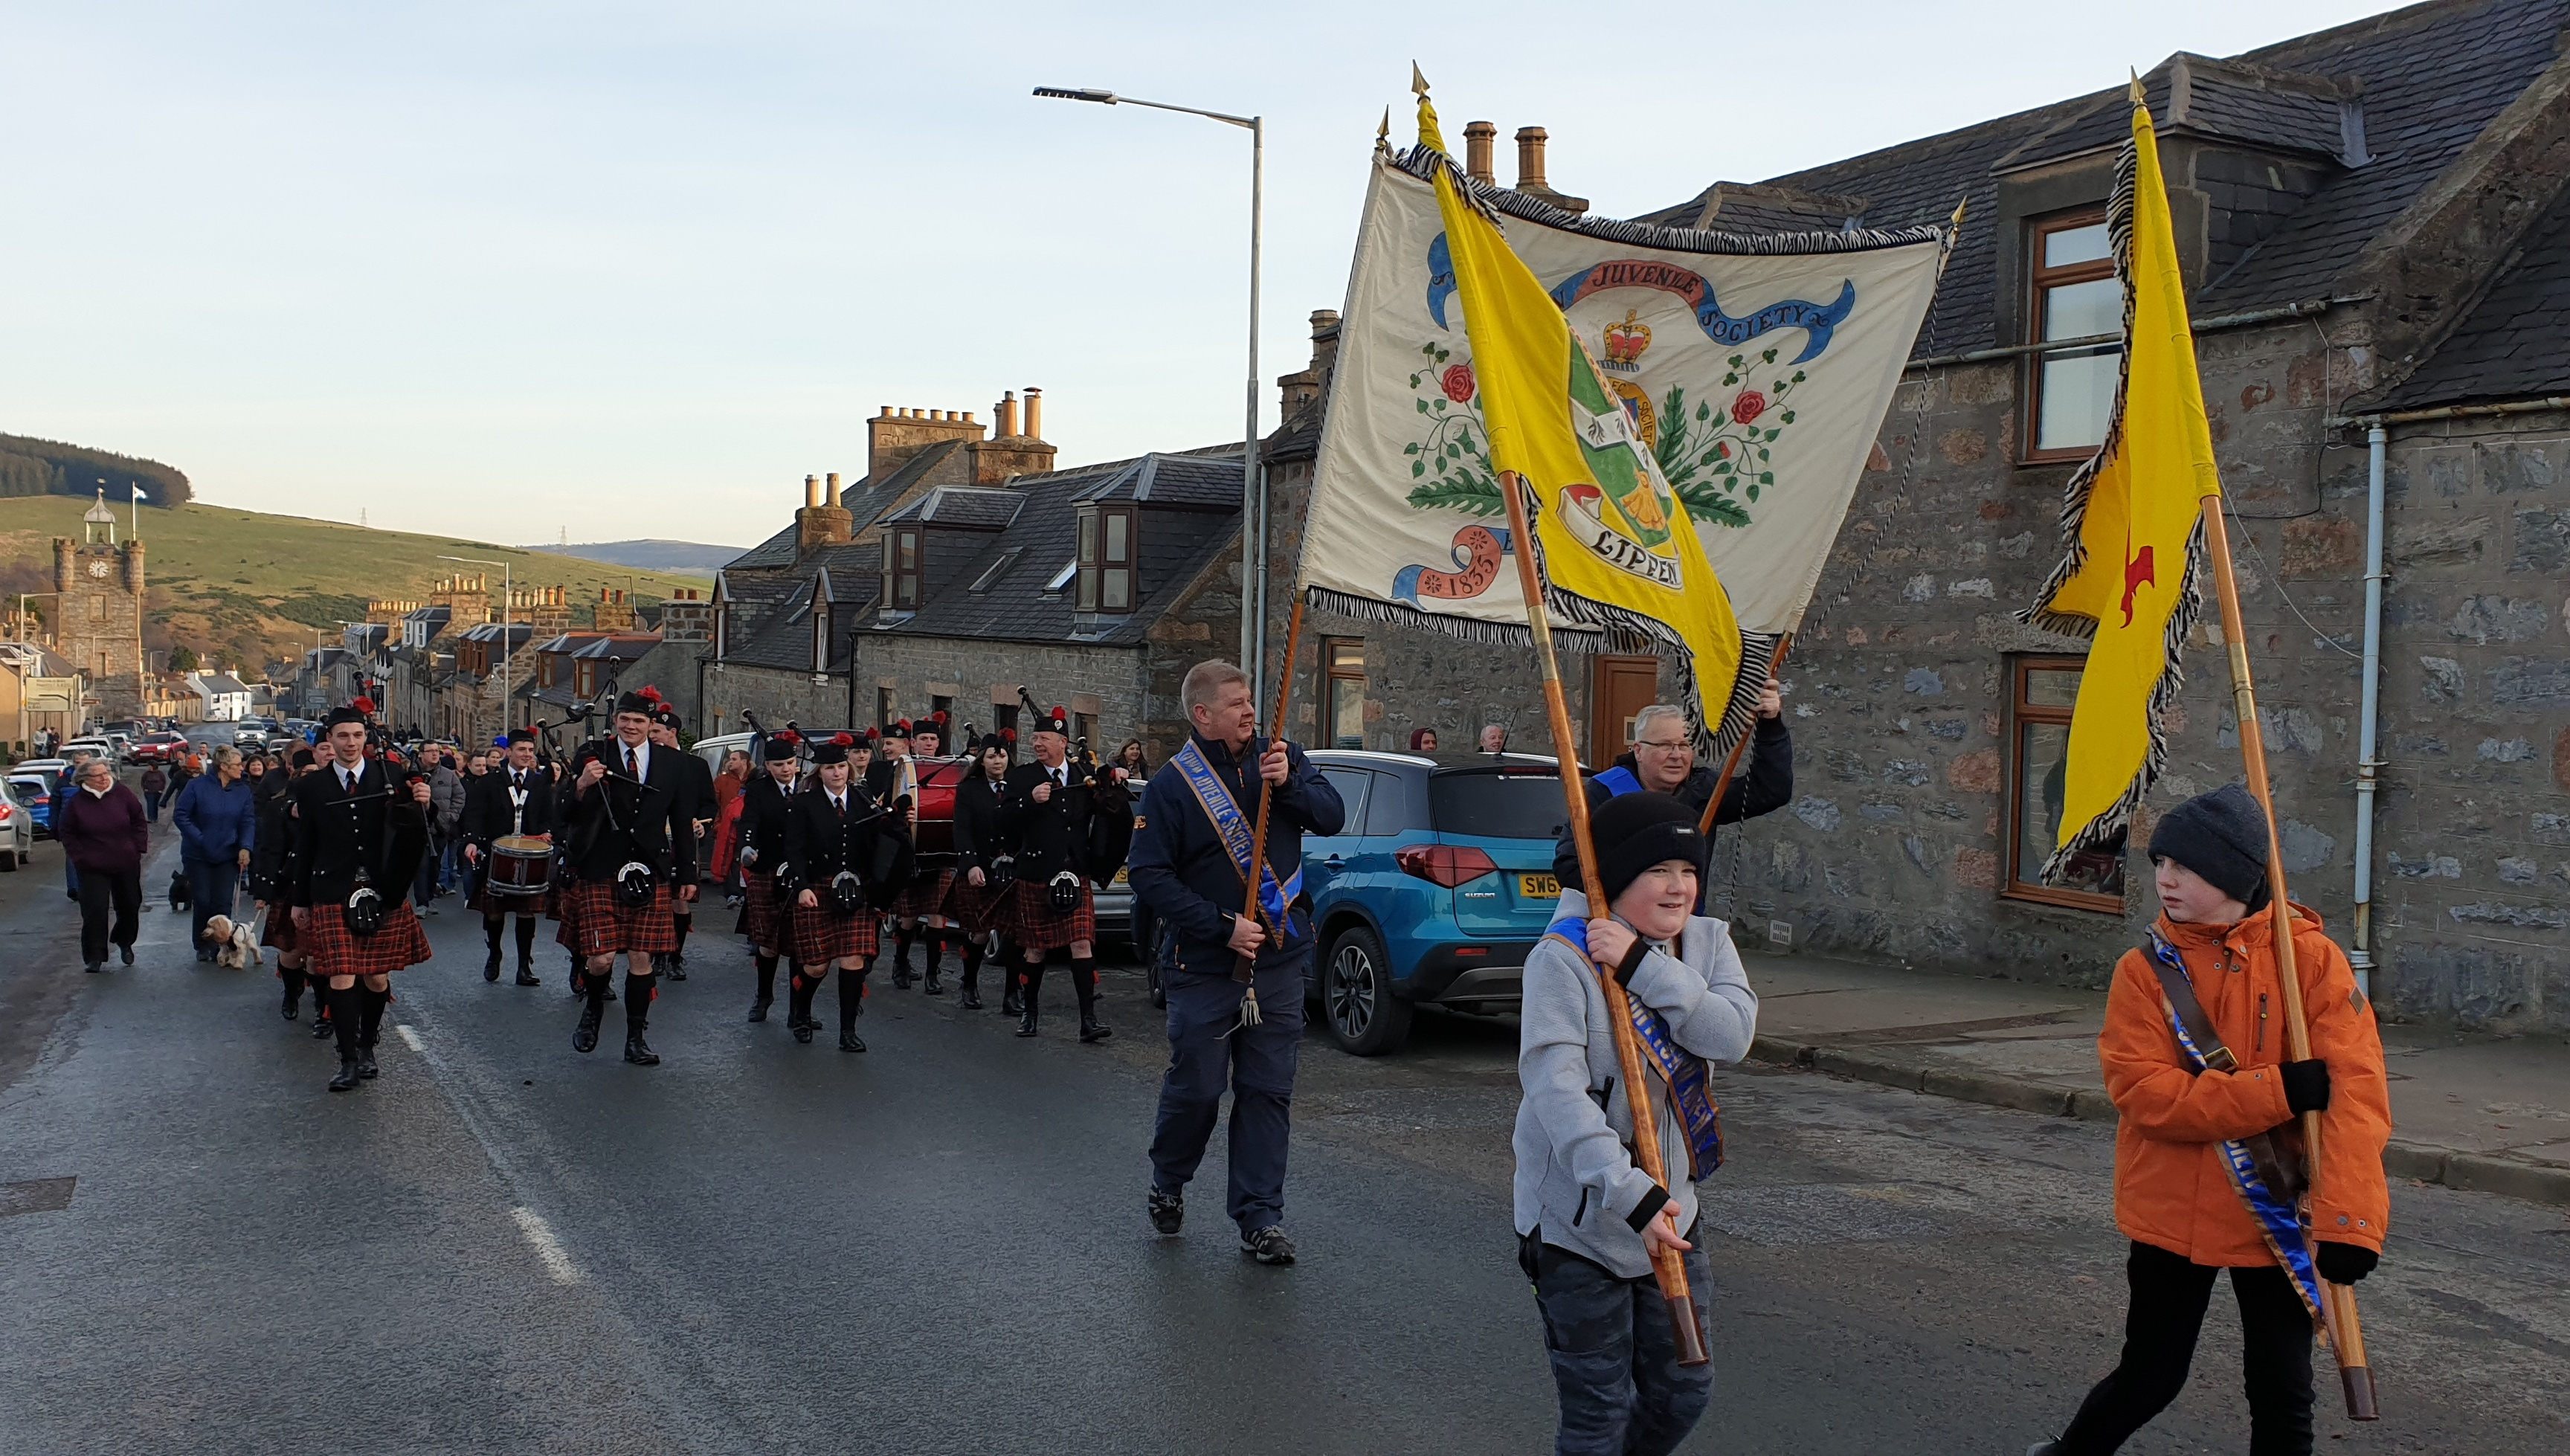 About 200 people joined the procession through Dufftown.